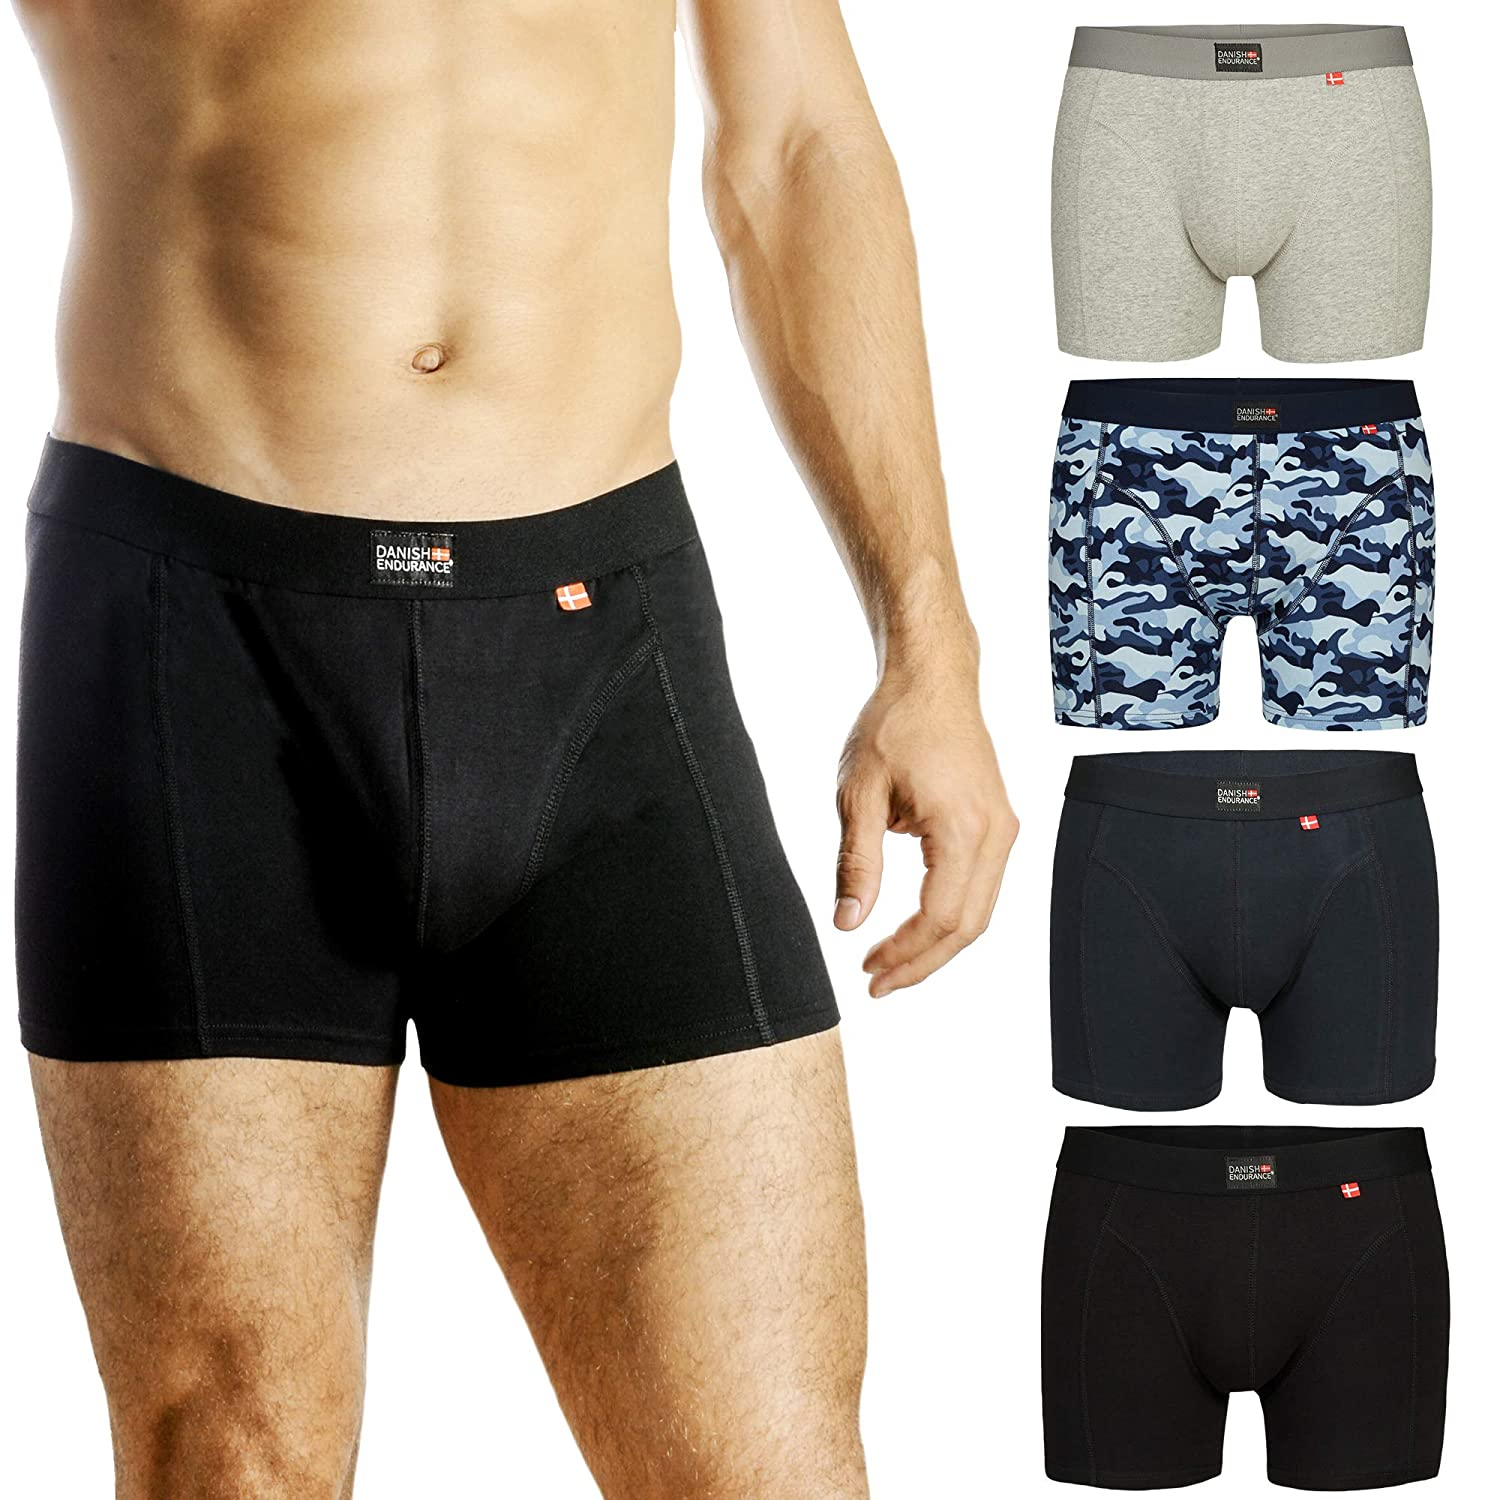 DANISH ENDURANCE Men's Trunks 3-Pack, Ultra Soft Stretchy Cotton, Classic Fit Underwear, Superior Fit & Comfort, Multipack Boxershorts, Cool Performance, Black, Grey, Navy Blue